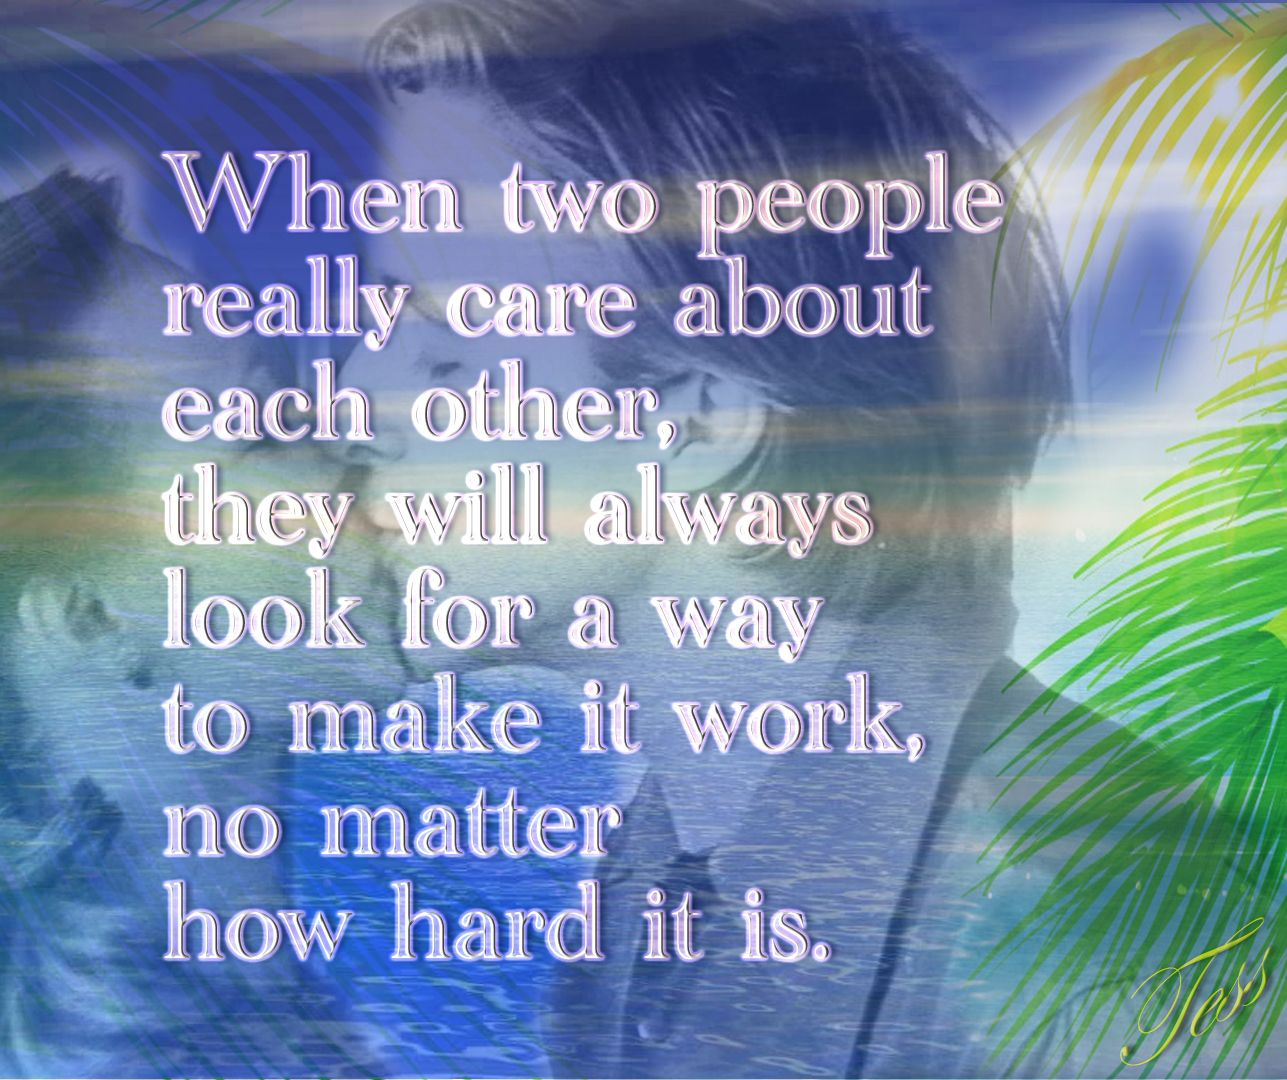 When two people really care about each other they will